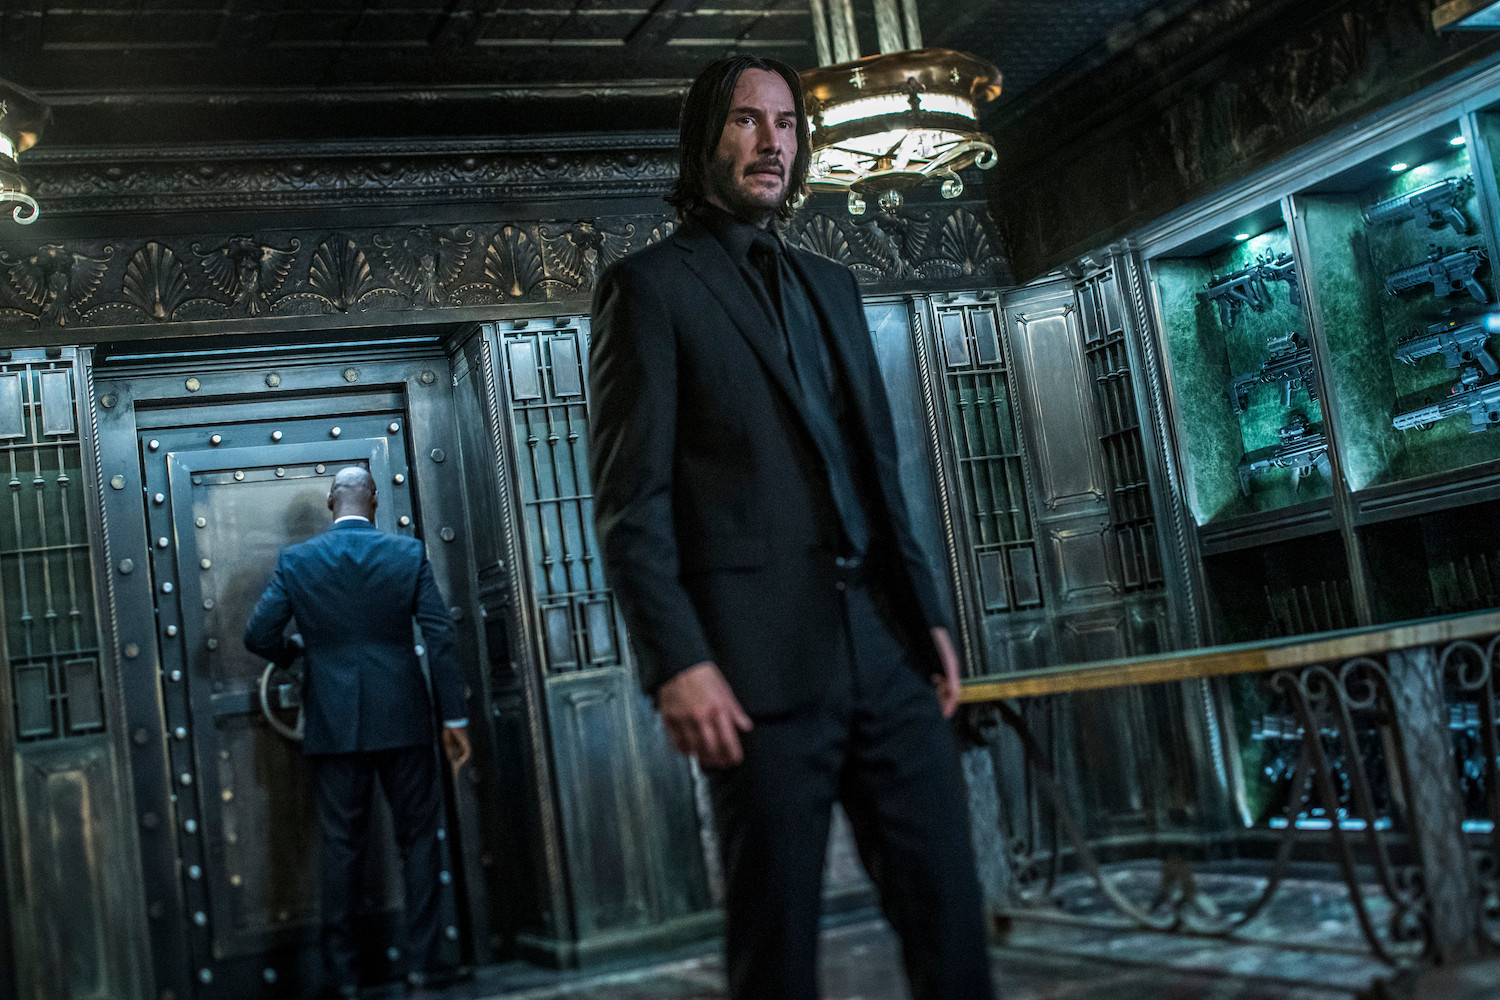 John Wick 3 Delivers the Justice We All Crave